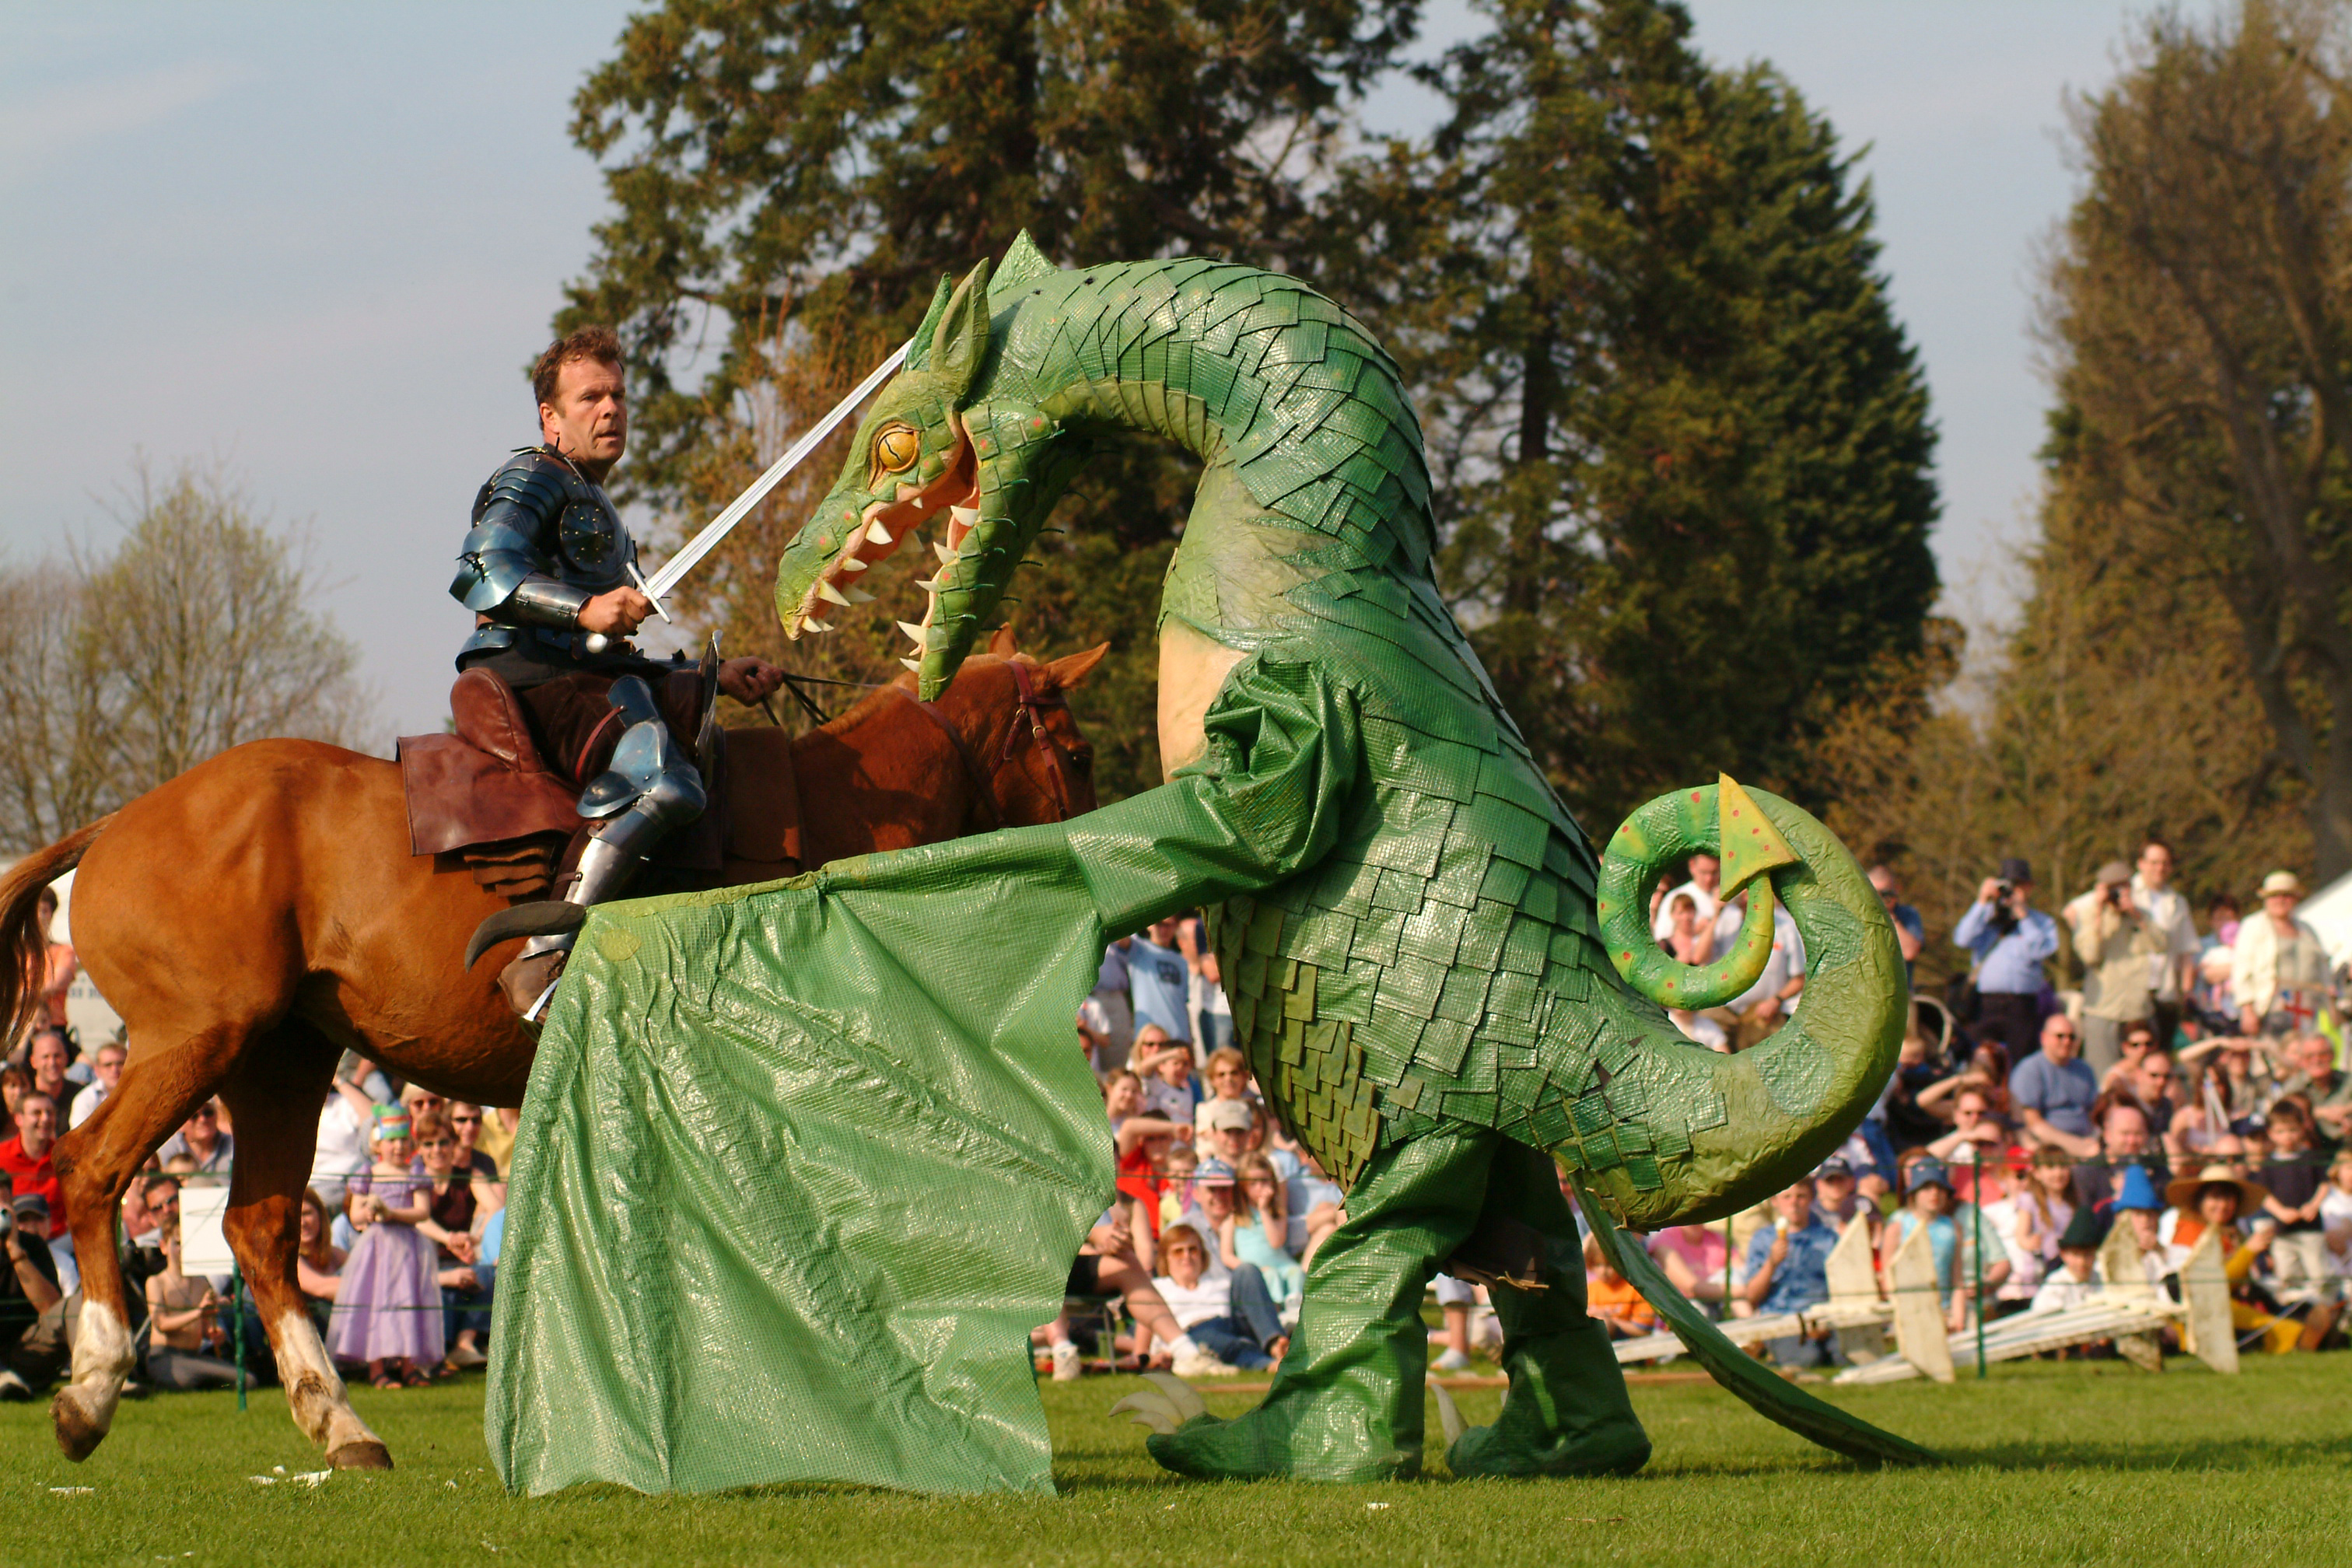 St George's Day 2016: Why we celebrate the Patron Saint of England